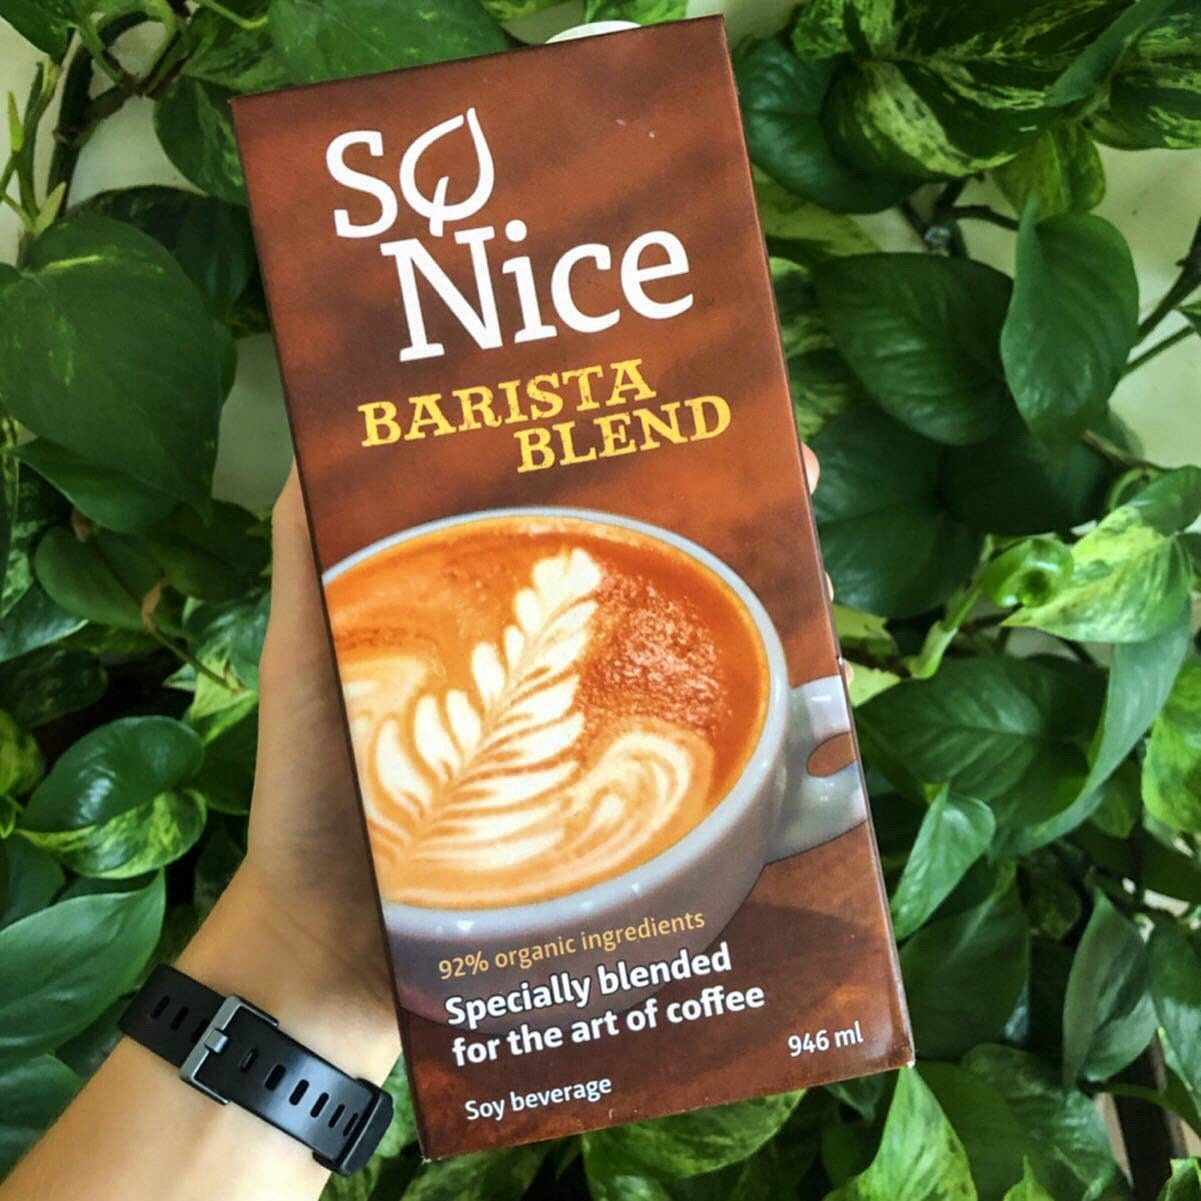 earth's own barista blend soy milk